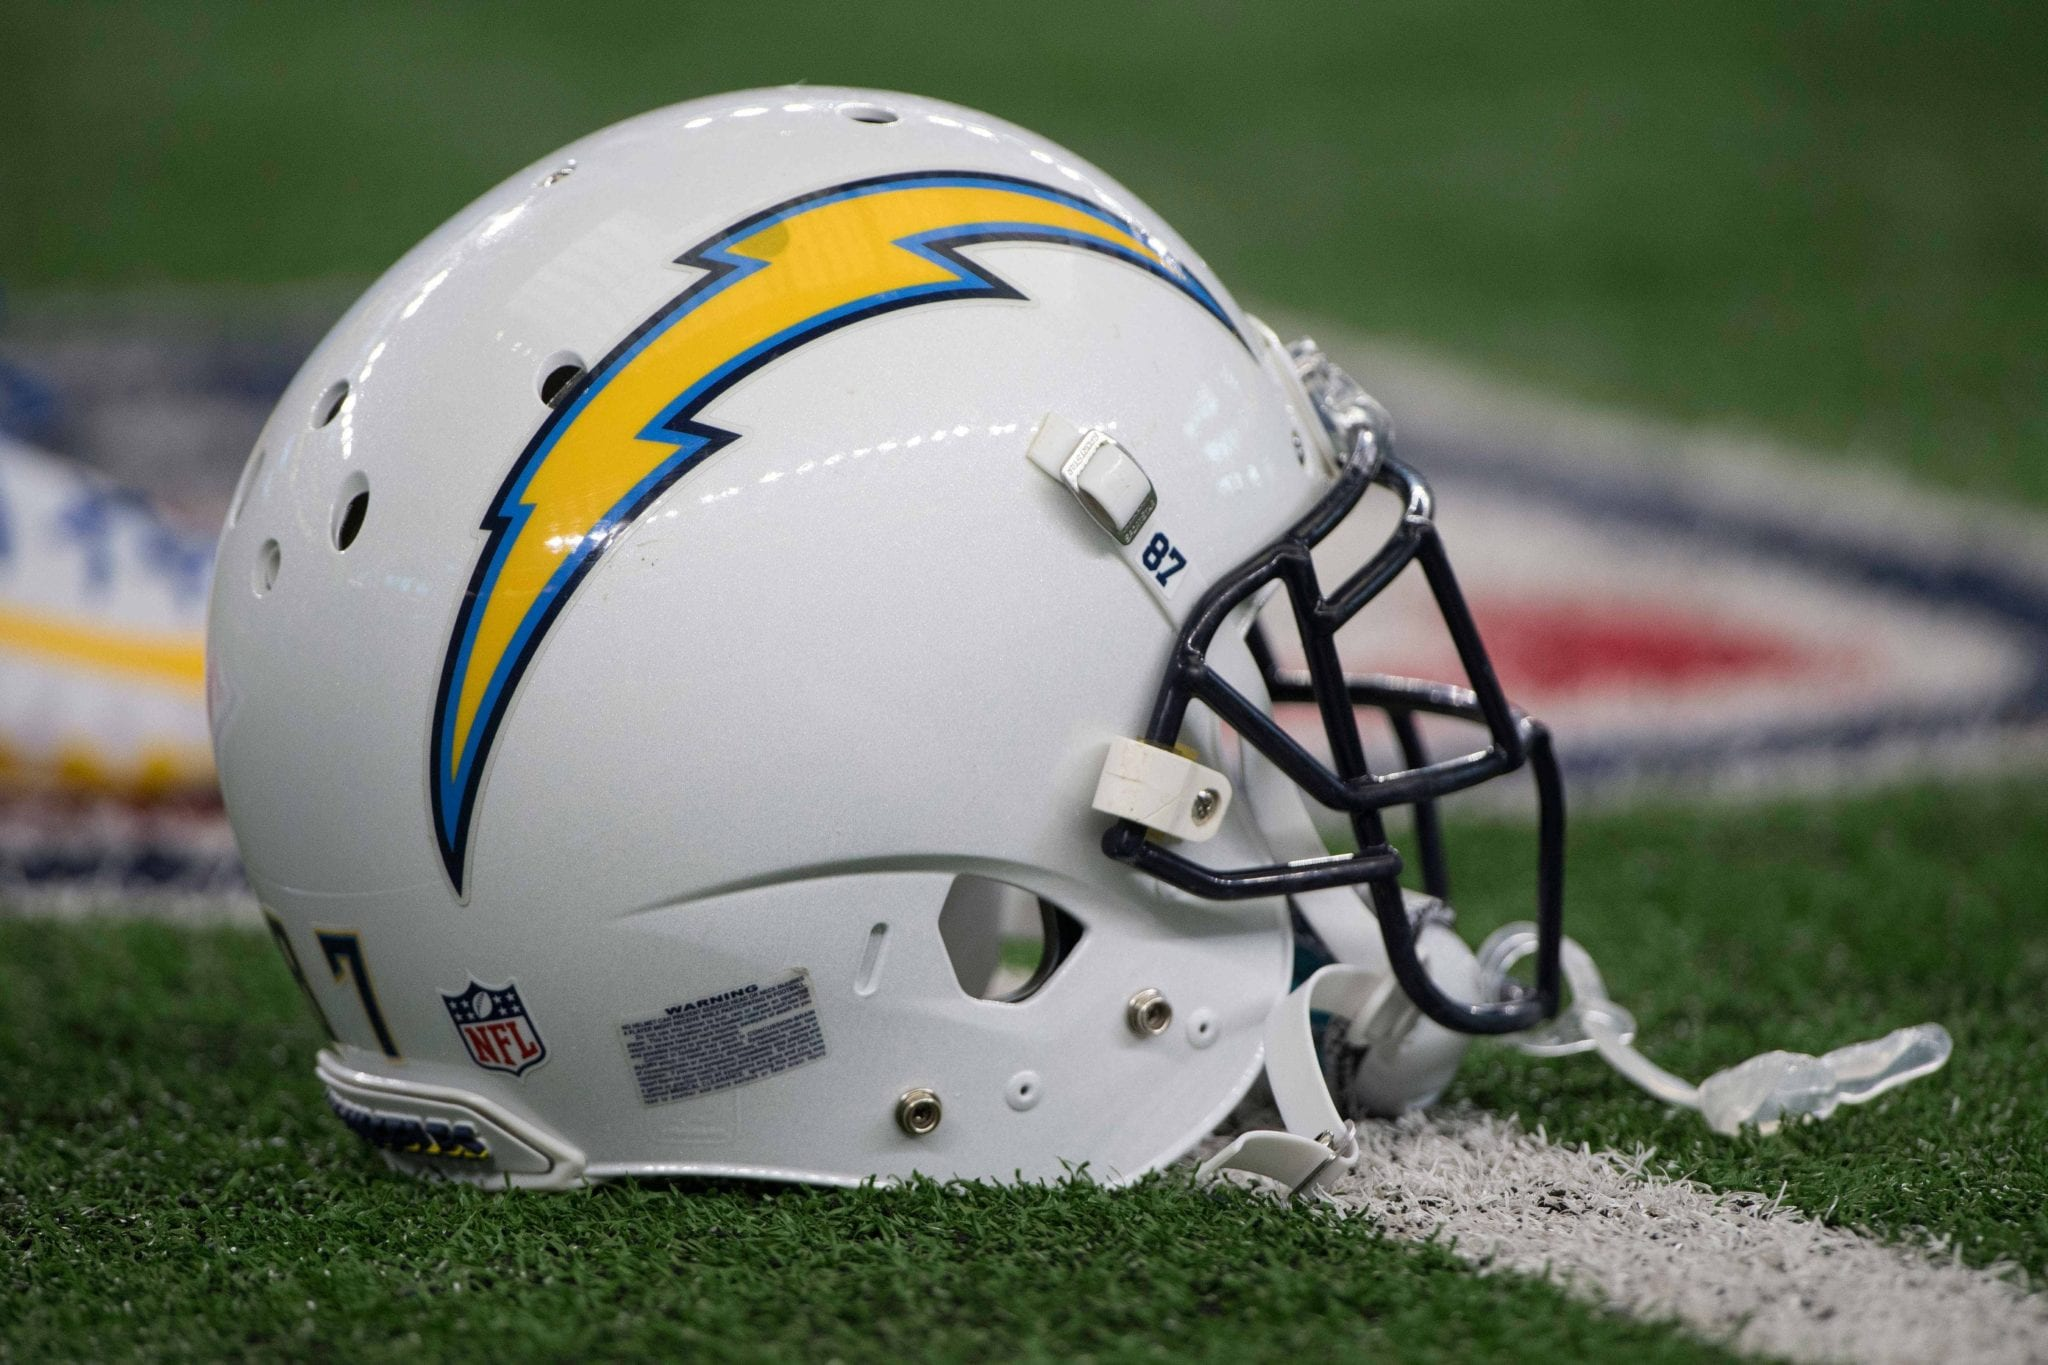 Nfl Notes Draft Broncos Chargers Nfltraderumors Co